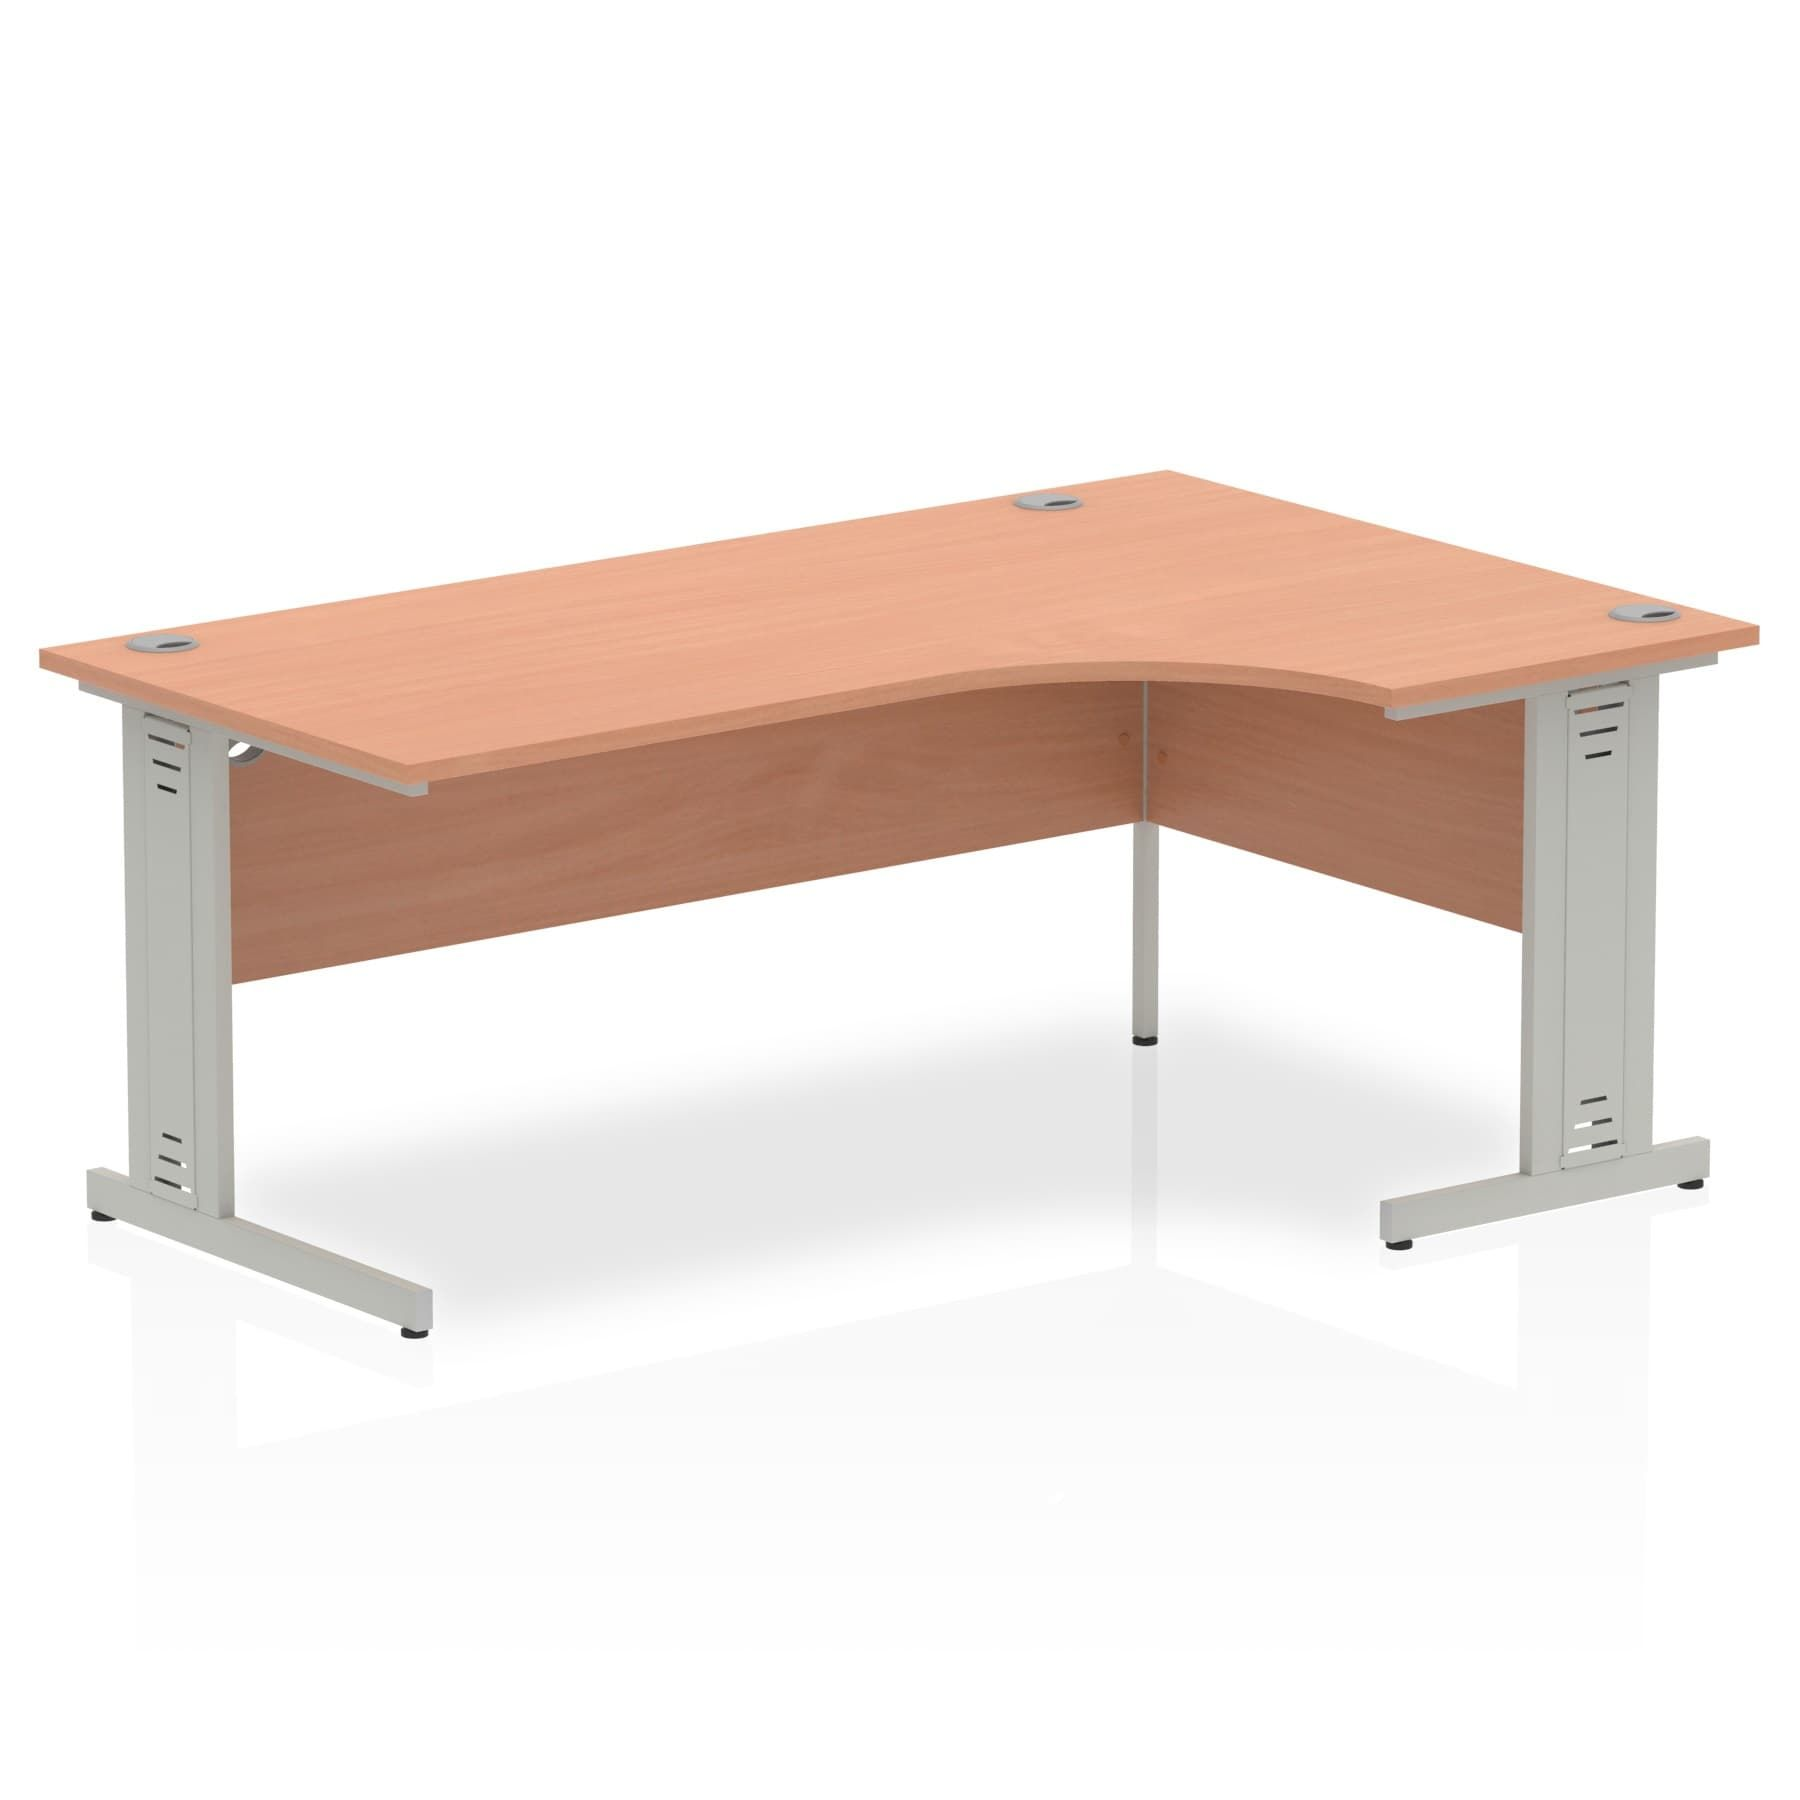 Impulse 1800 Right Hand Crescent Desk